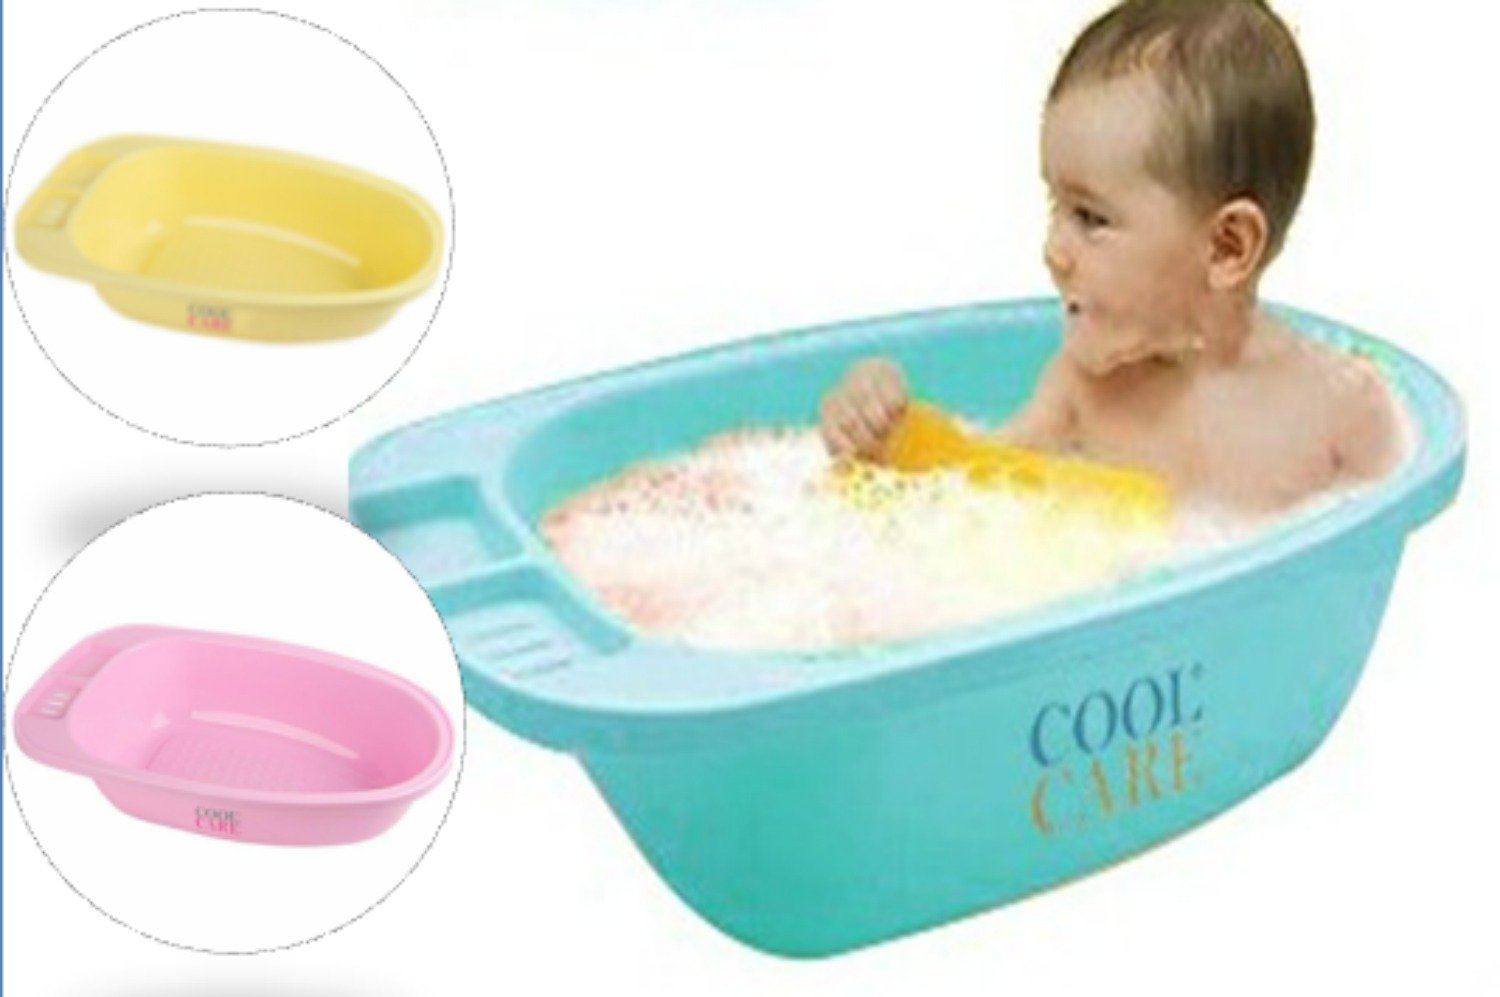 Amazon.com: Cool Care Anti Slip Baby Bath Tub for Sitters, 100 ...